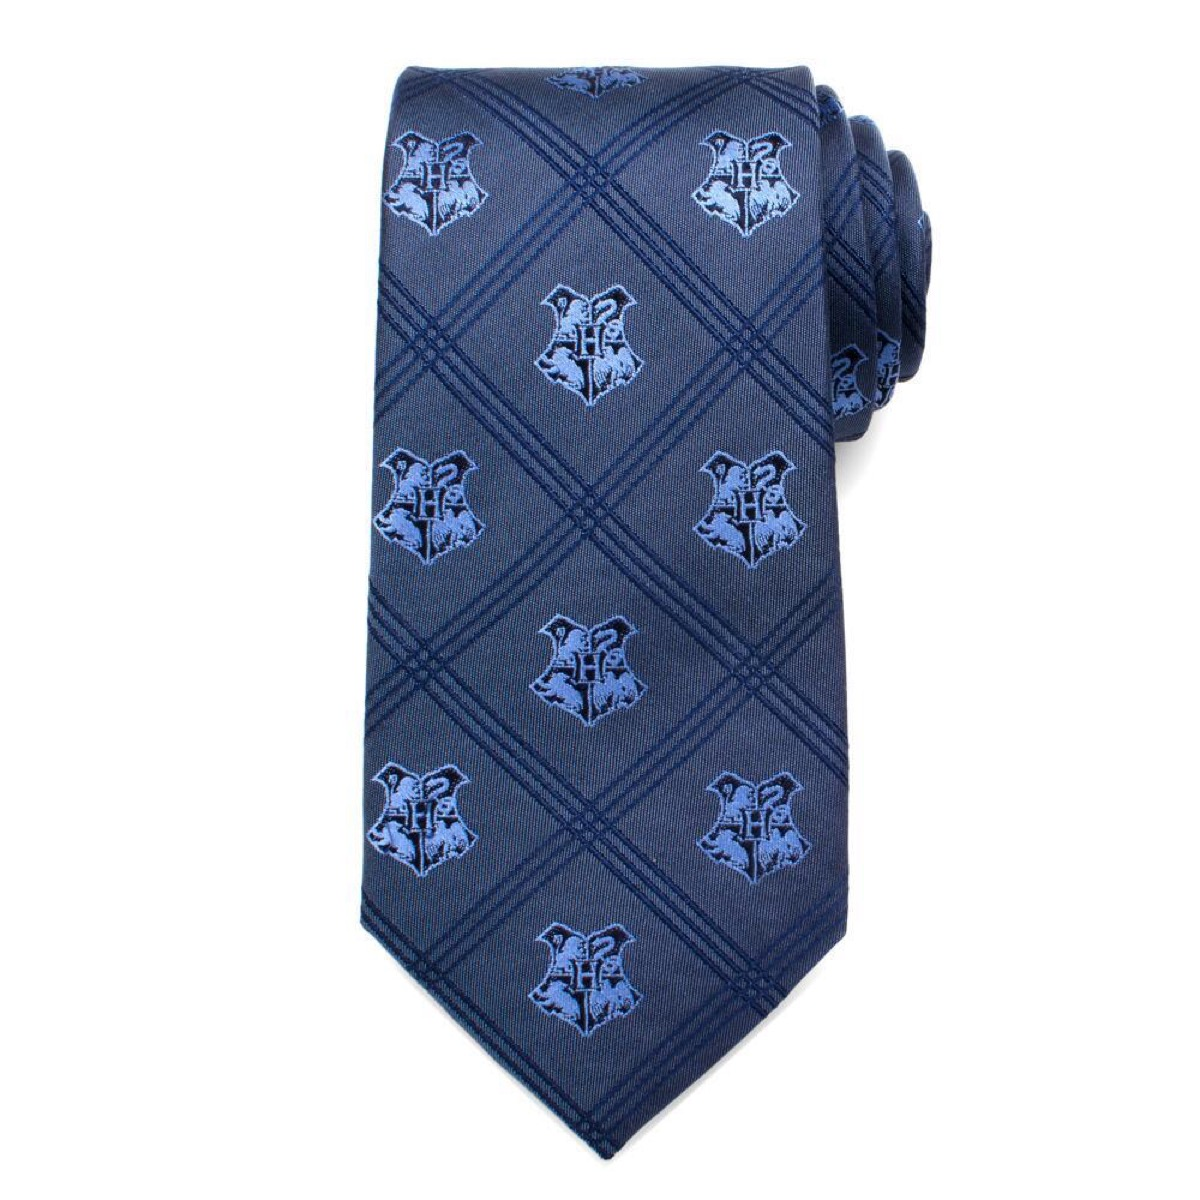 Plaid Harry Potter Tie {Gifts for Harry Potter Fans}